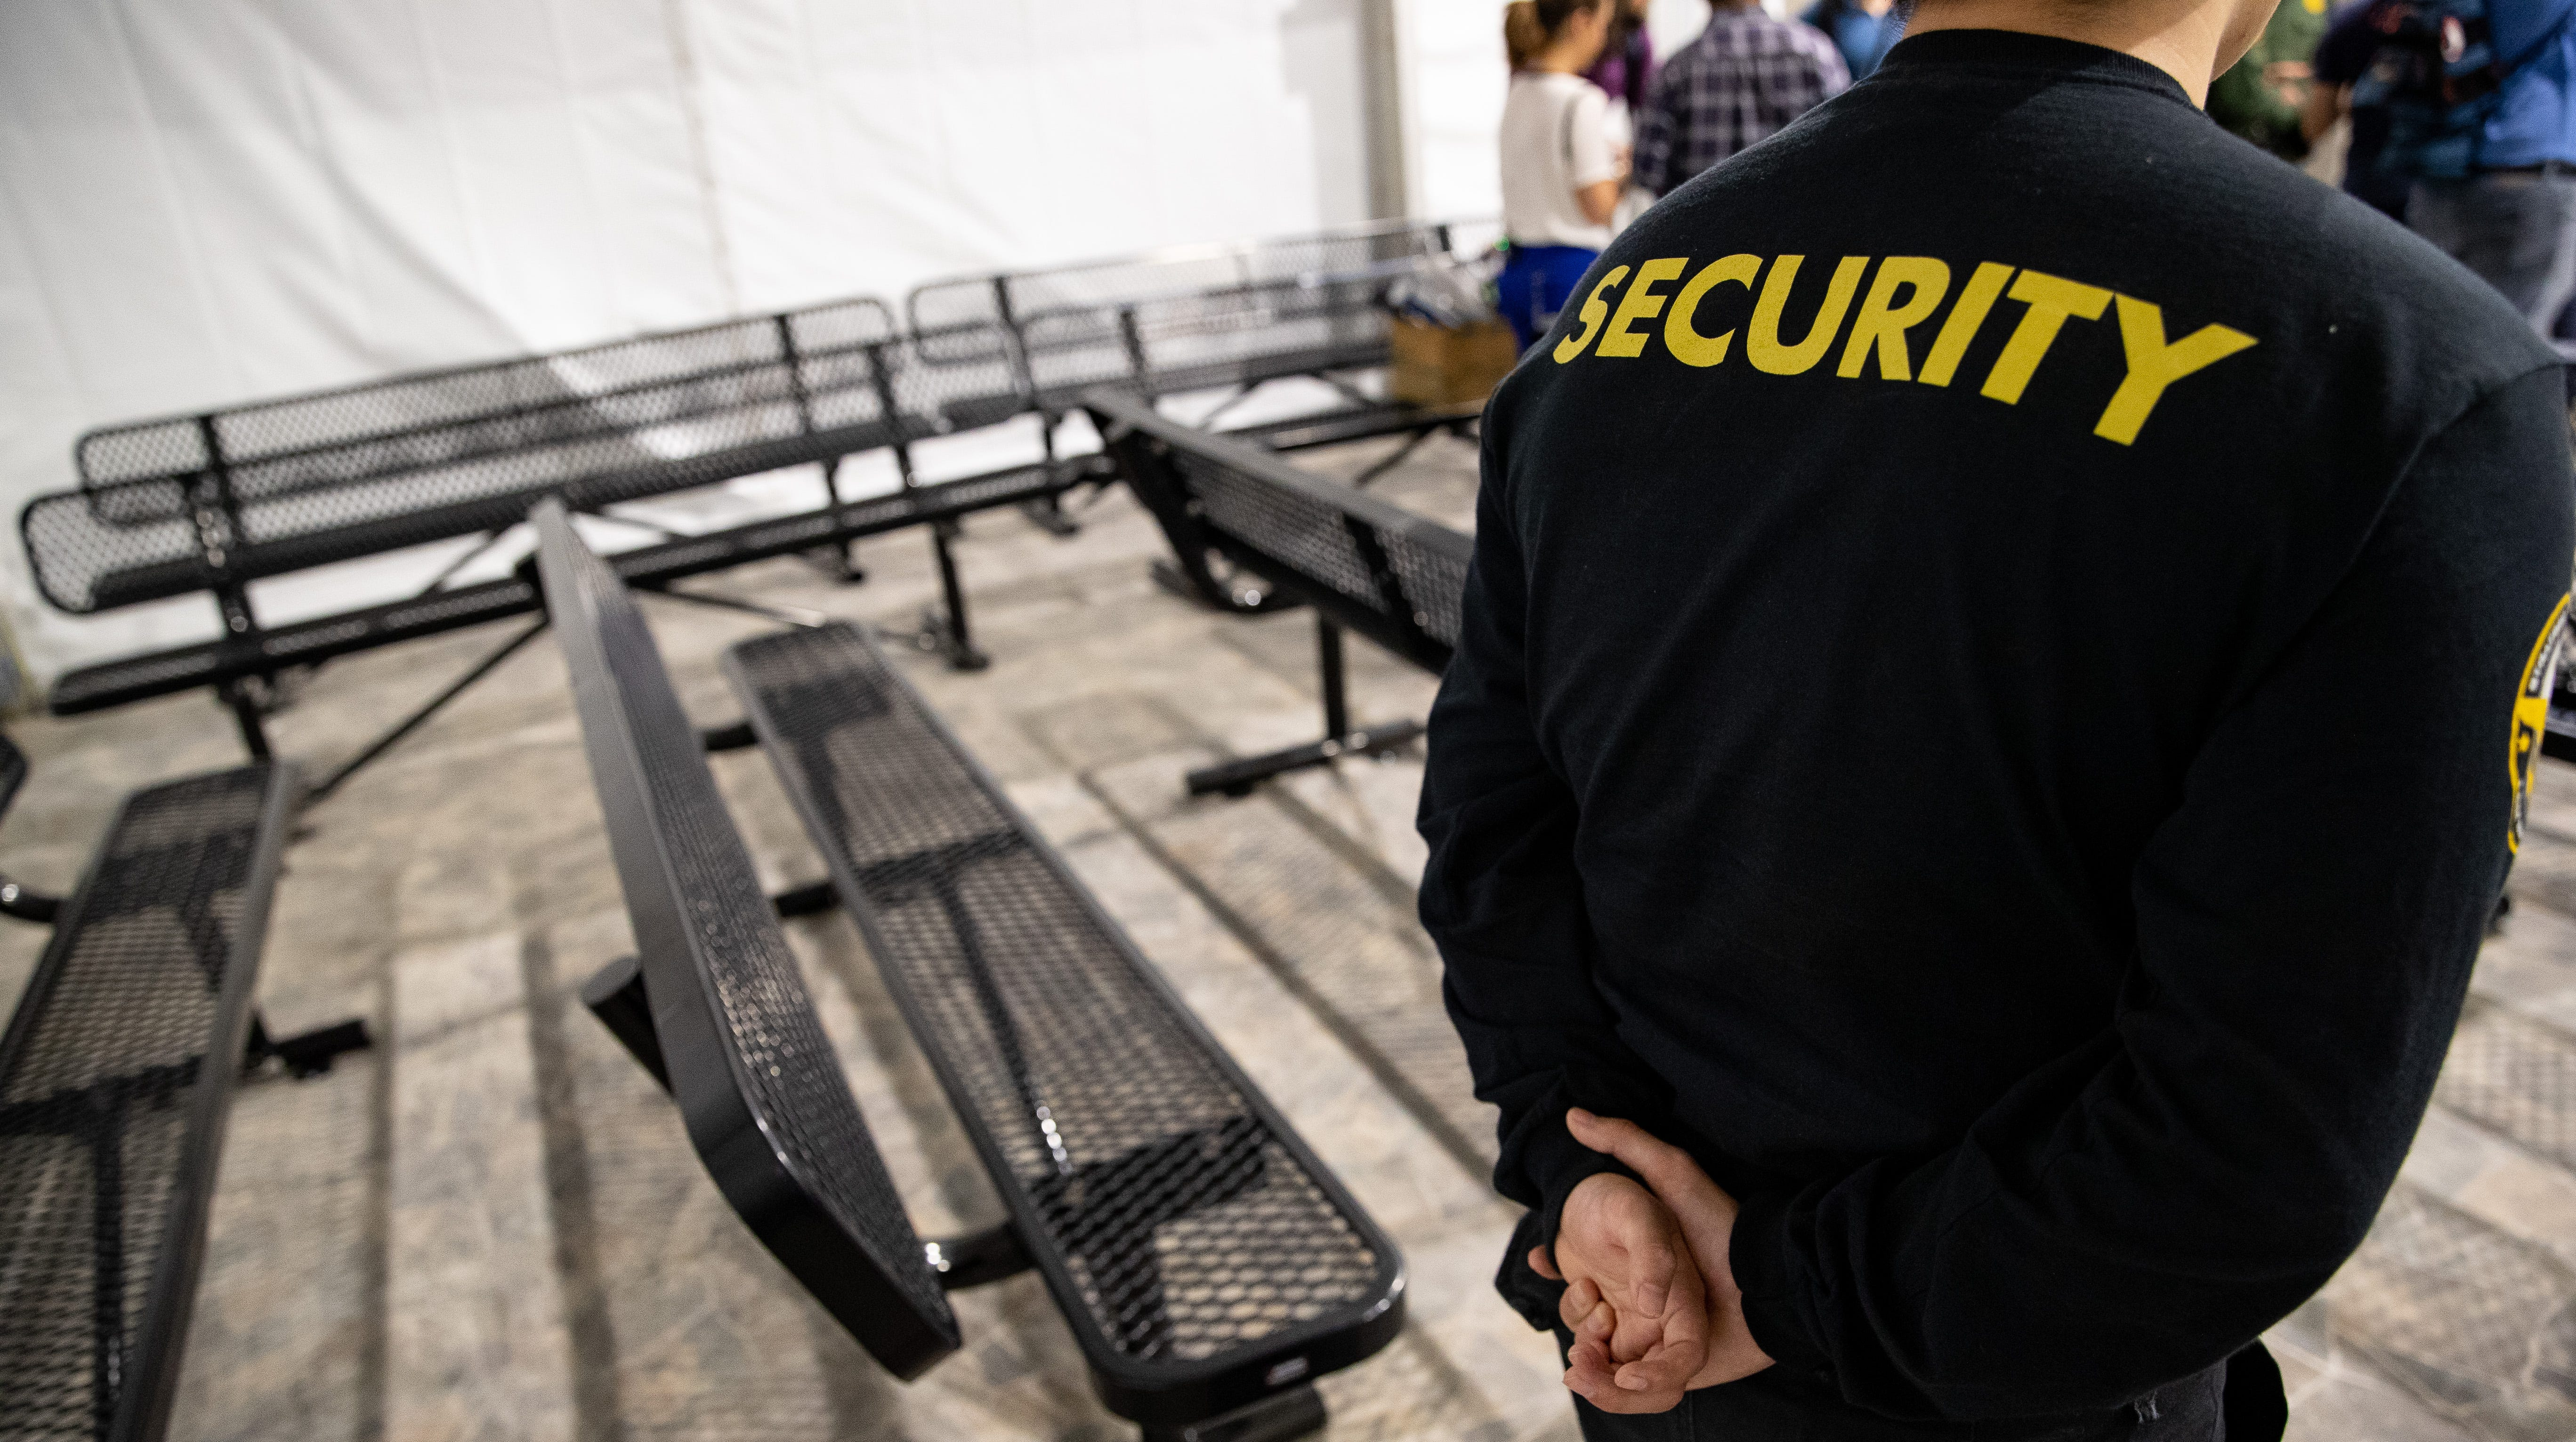 A security guard stands in the intake room at U.S Customs and Border ProtectionÕs new temporary detention facility for migrants near the Donna-Rio International Bridge in Donna Tx. on Thursday, May 2, 2019.